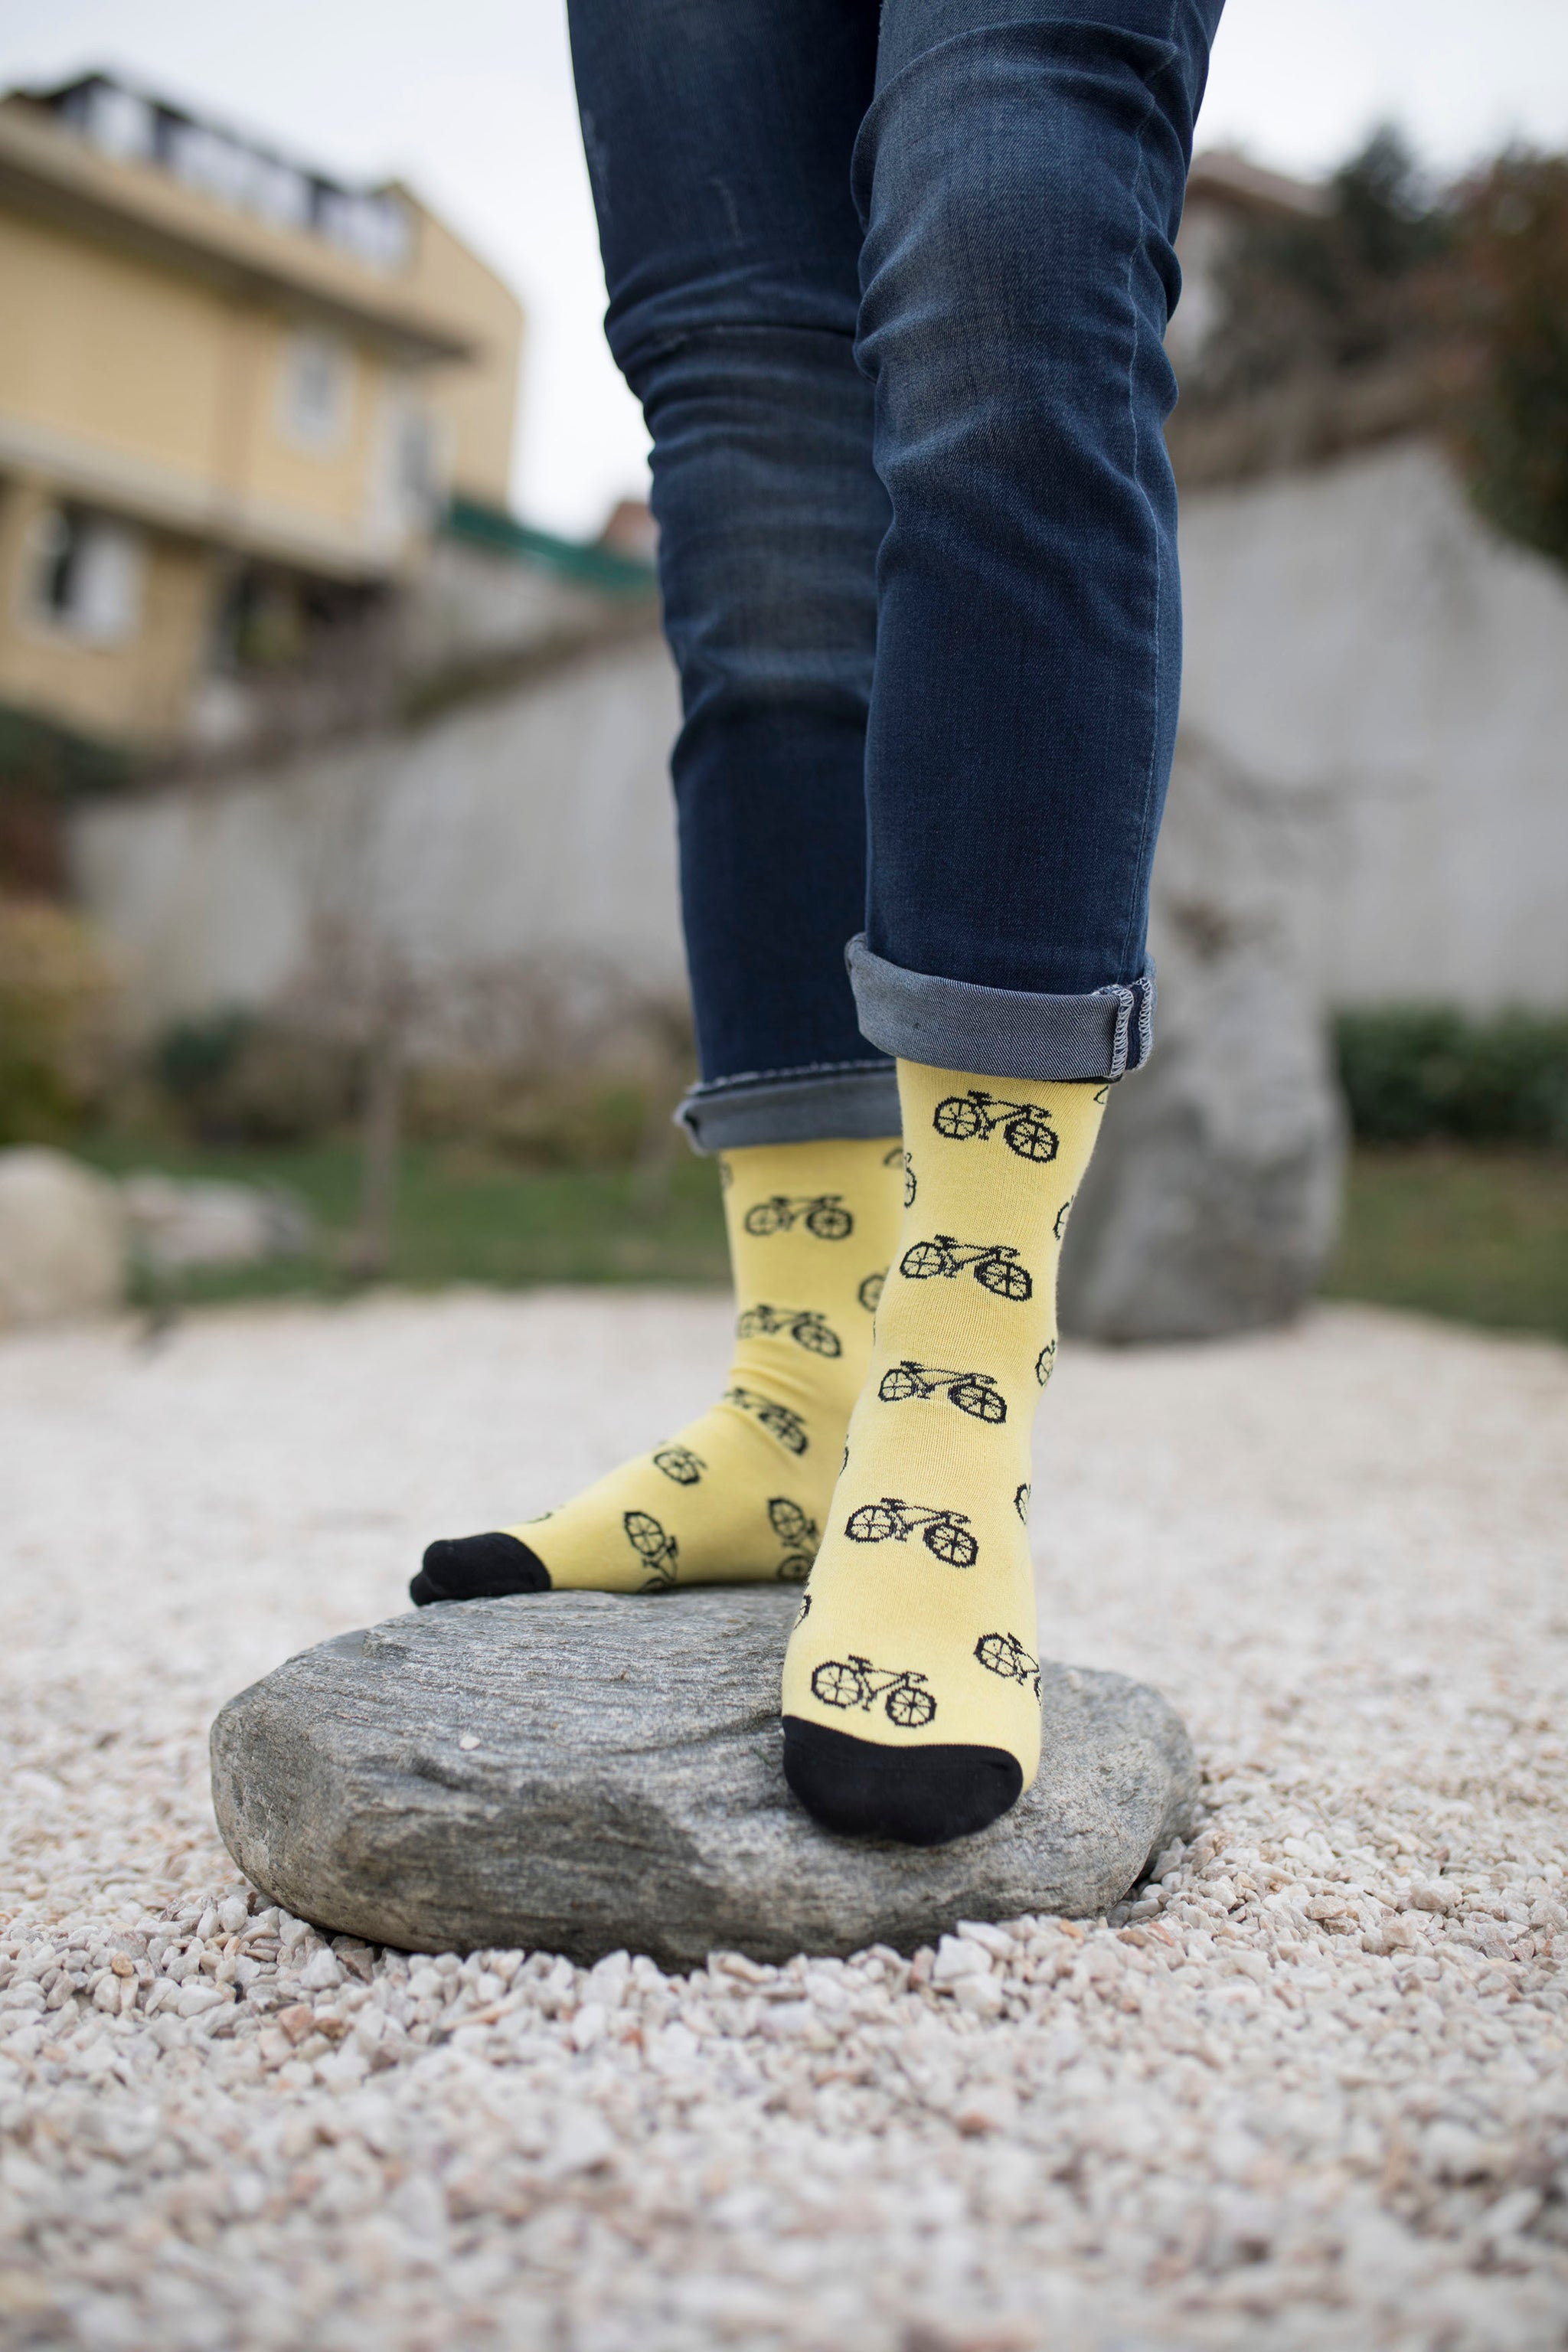 Men's Canary Bicycle Socks